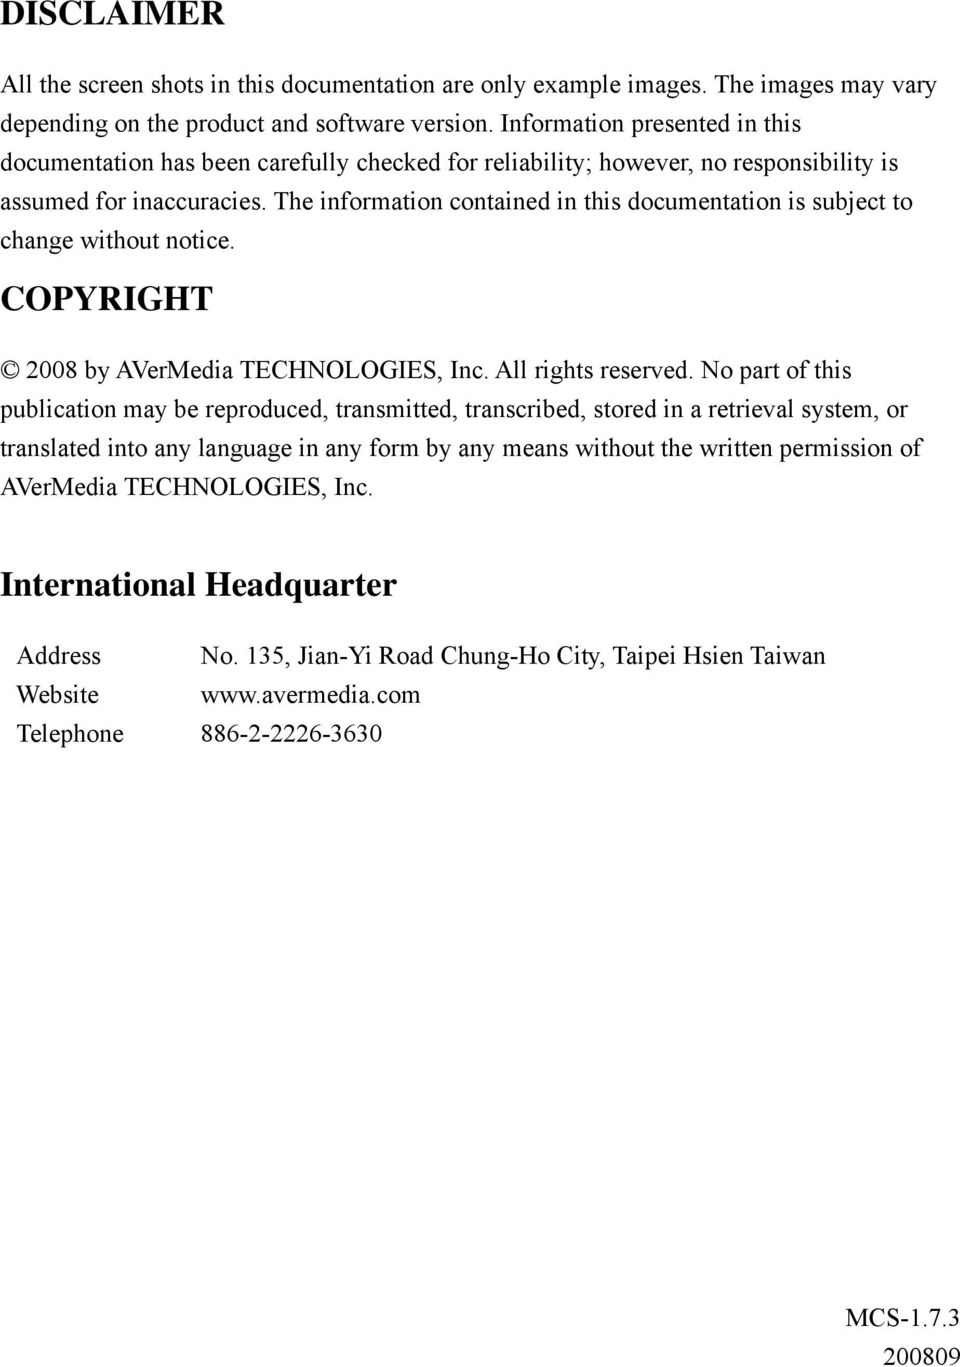 The information contained in this documentation is subject to change without notice. COPYRIGHT 2008 by AVerMedia TECHNOLOGIES, Inc. All rights reserved.